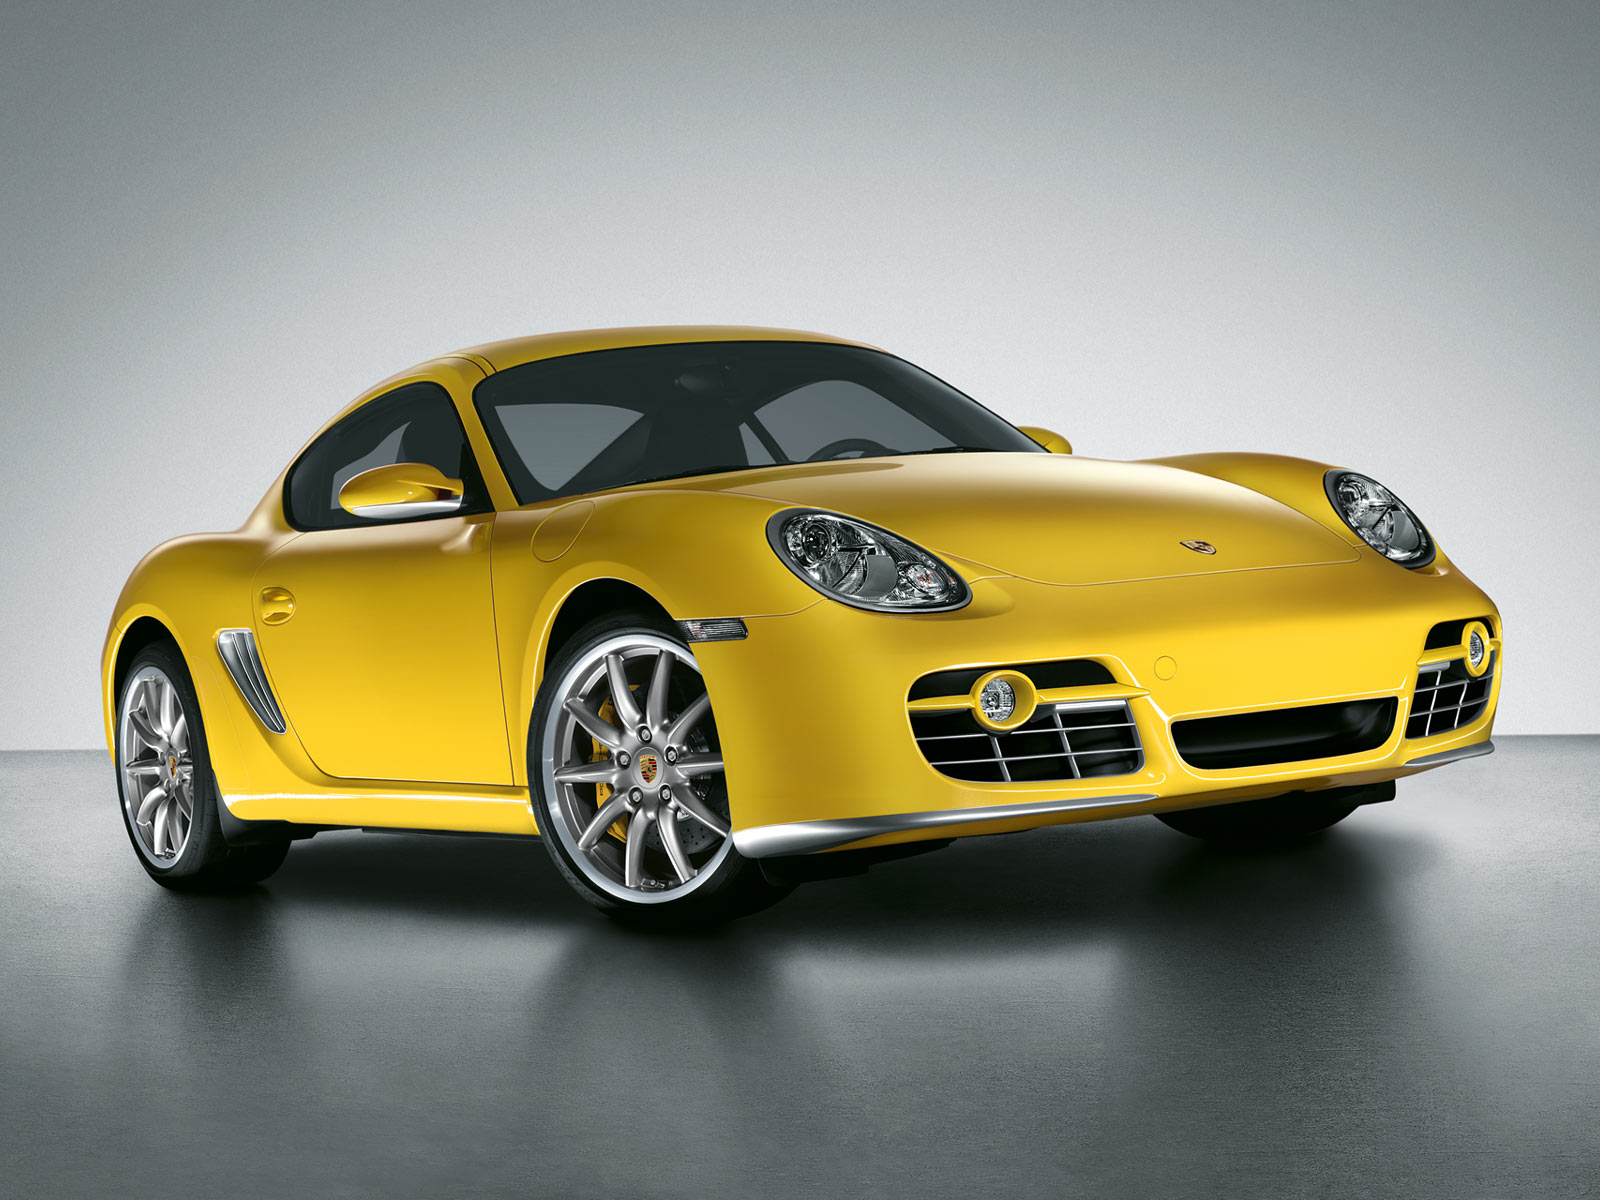 Yellow Porsche in a series of collectible model